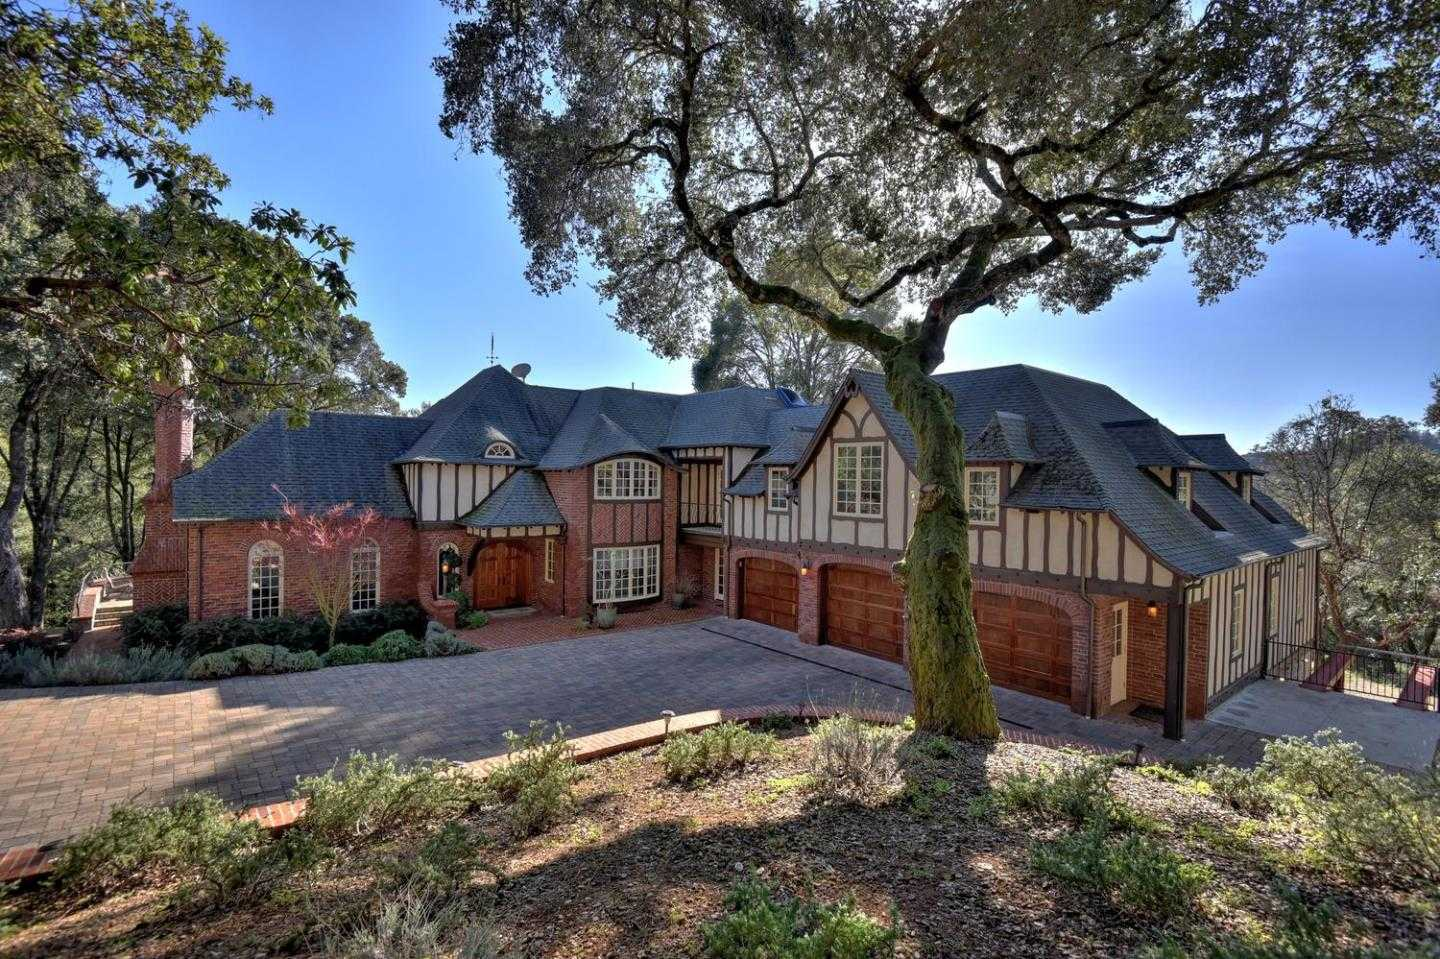 $2,695,000 - 4Br/4Ba -  for Sale in Soquel